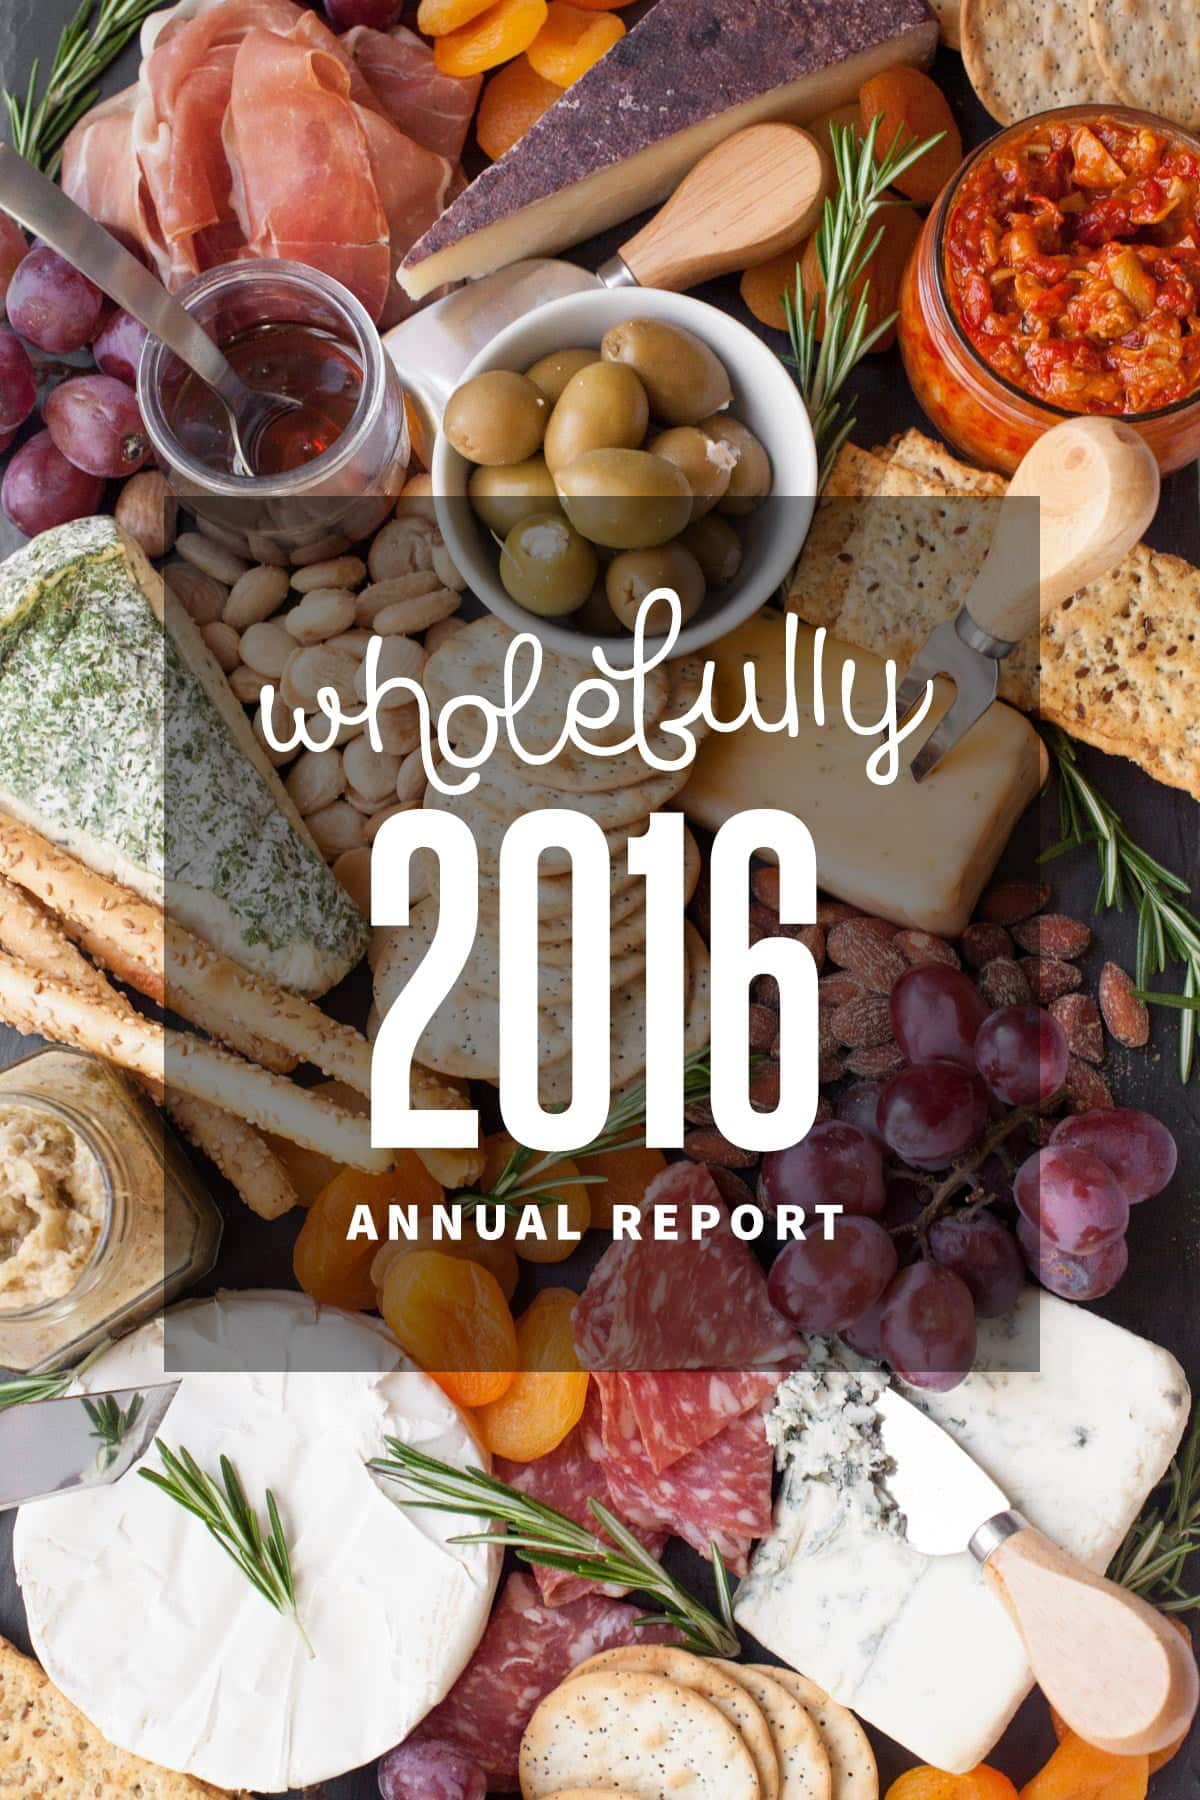 Wholefully 2016 Annual Report